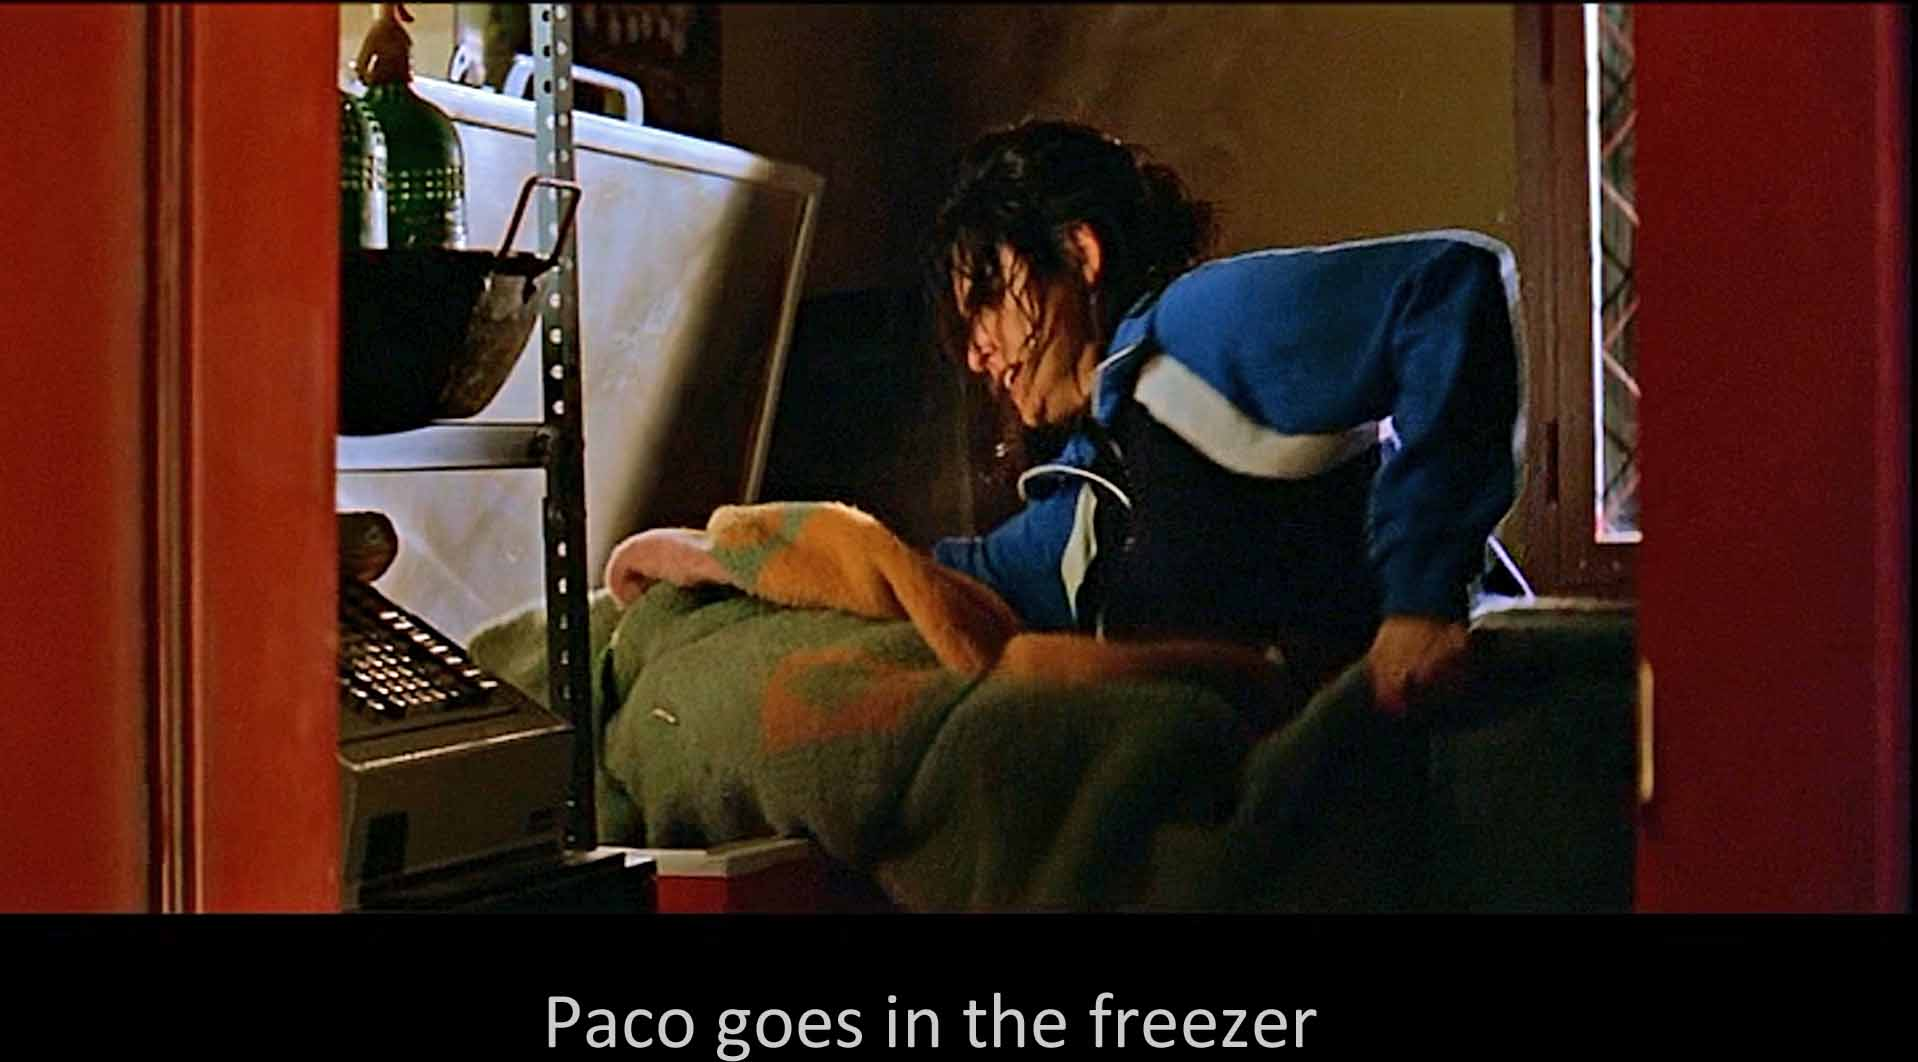 Paco goes in the freezer